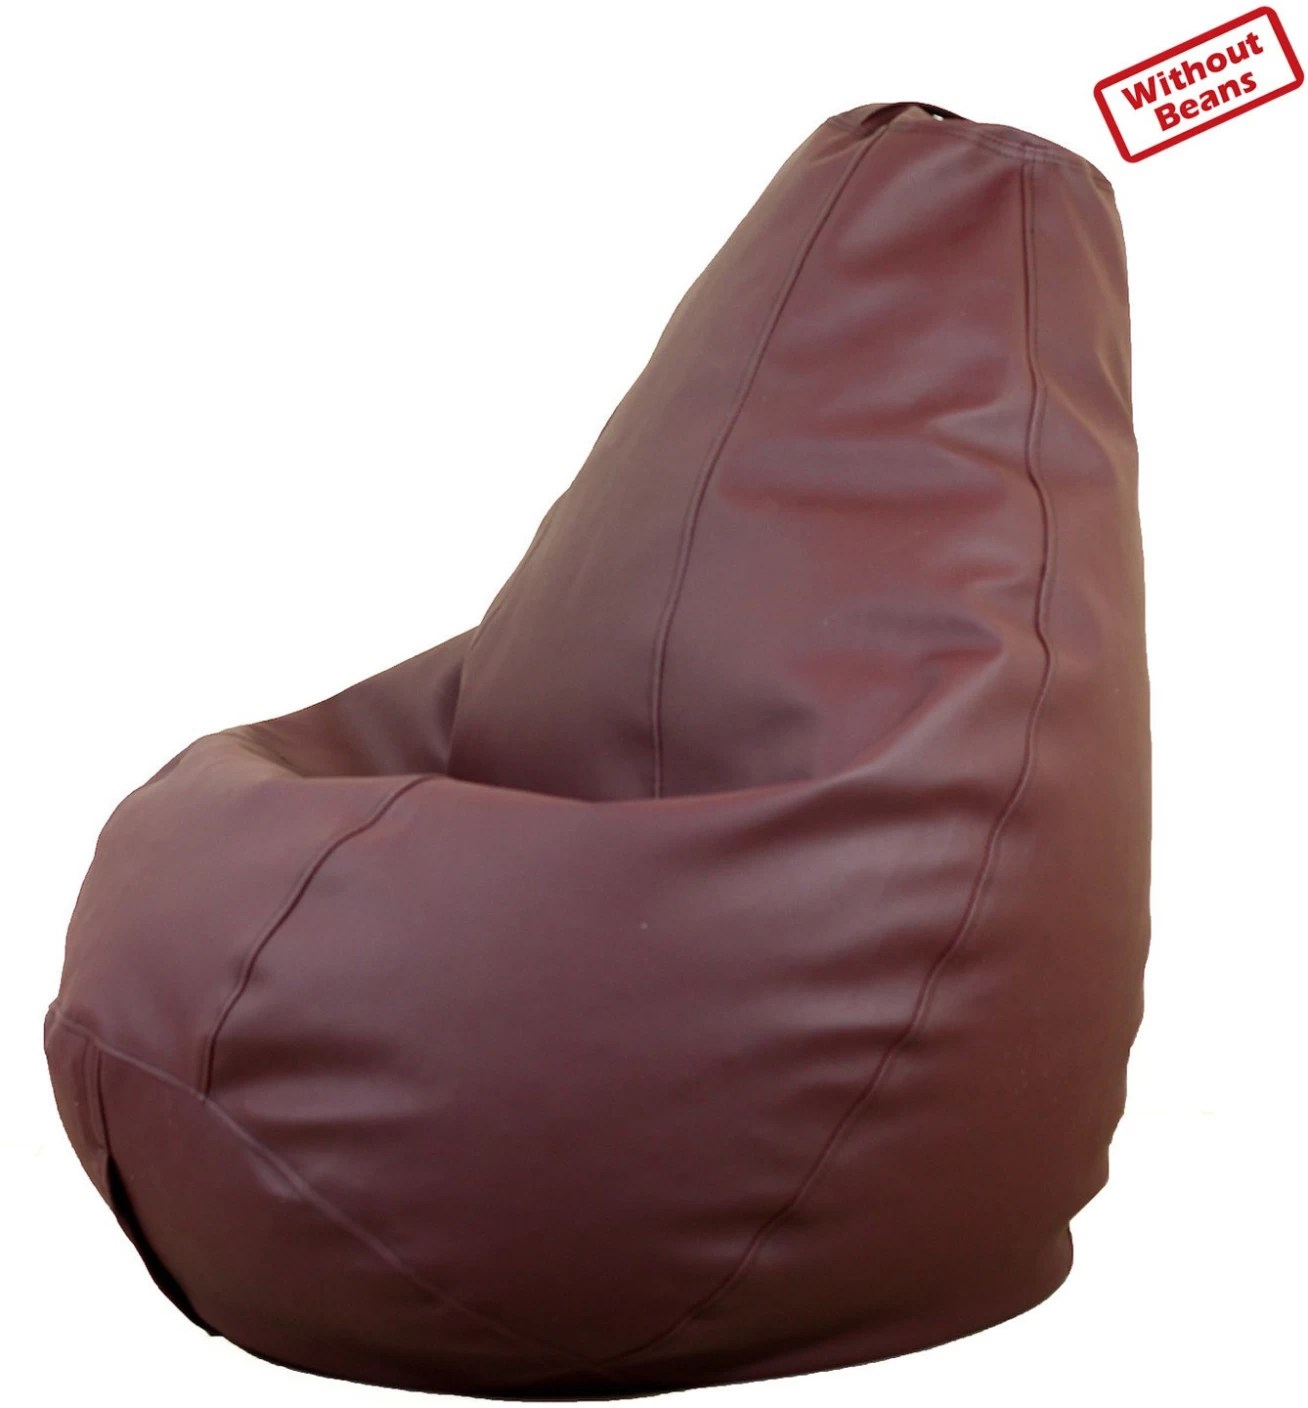 bean bag sofas india ethan allen sectional sofa ohs xxl teardrop cover without beans price in